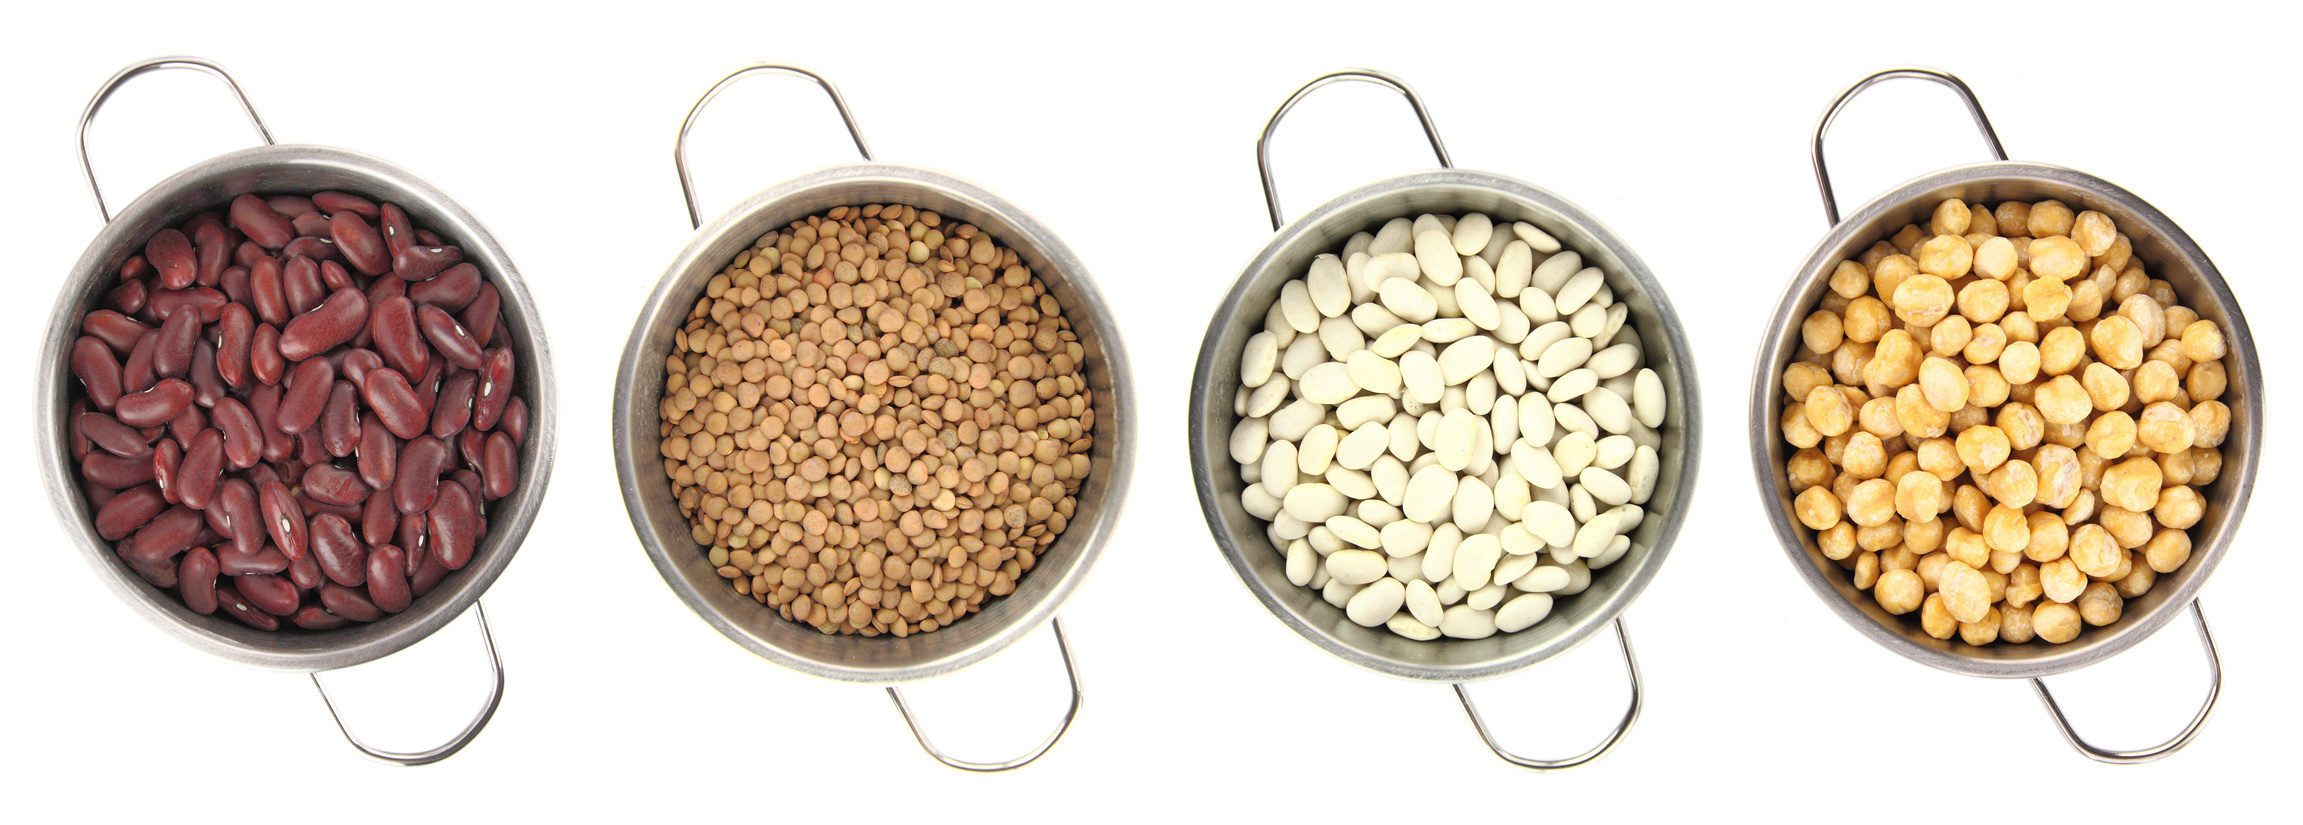 featured image for How to Store and Cook Dried Beans